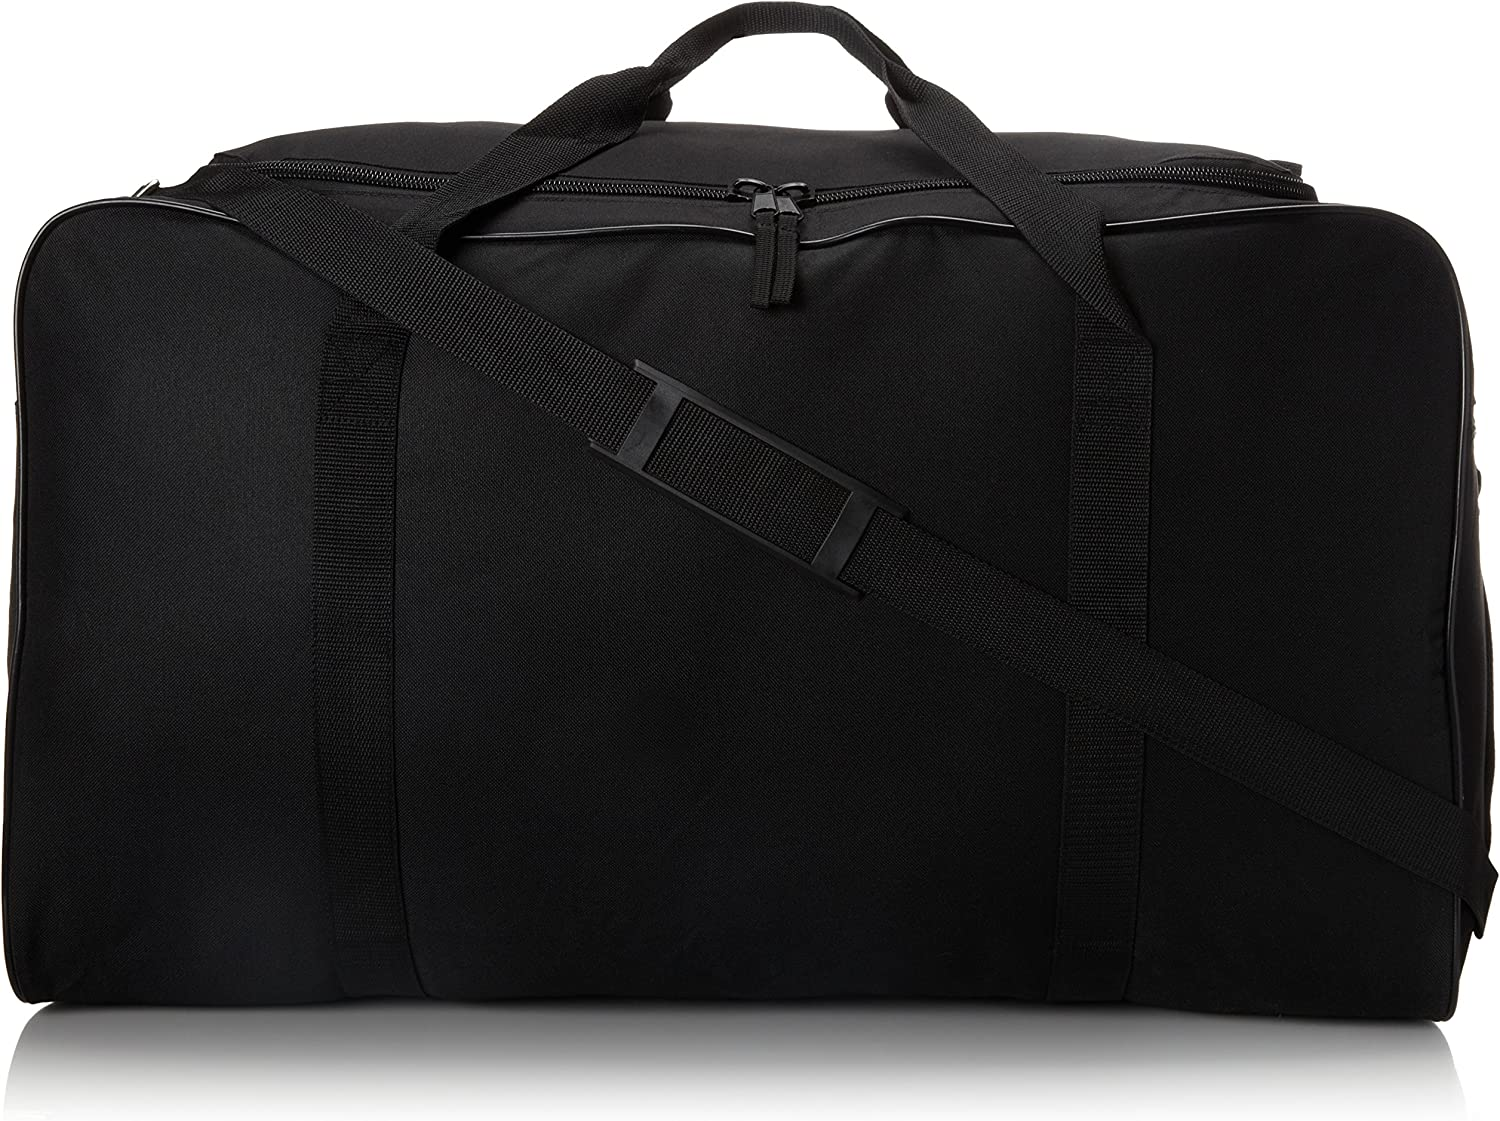 Proguard Coaches Hockey Sports Equipment Duffel Bag with Shoulder Straps | Large, Black 28-Inch : Hockey Bags : Sports & Outdoors